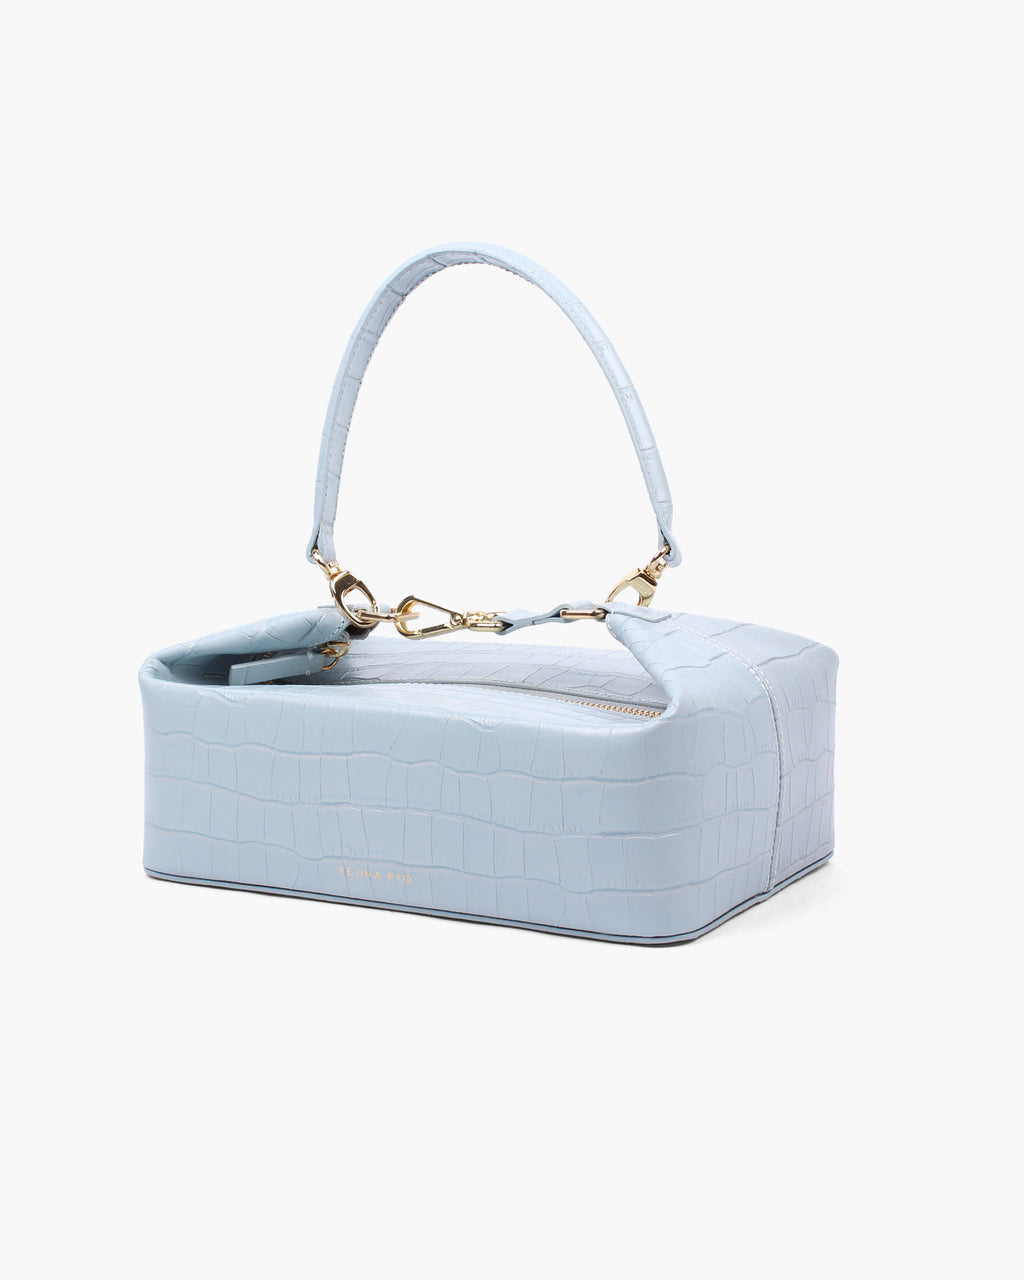 Olivia Box Bag Leather Croc Duck Egg Blue